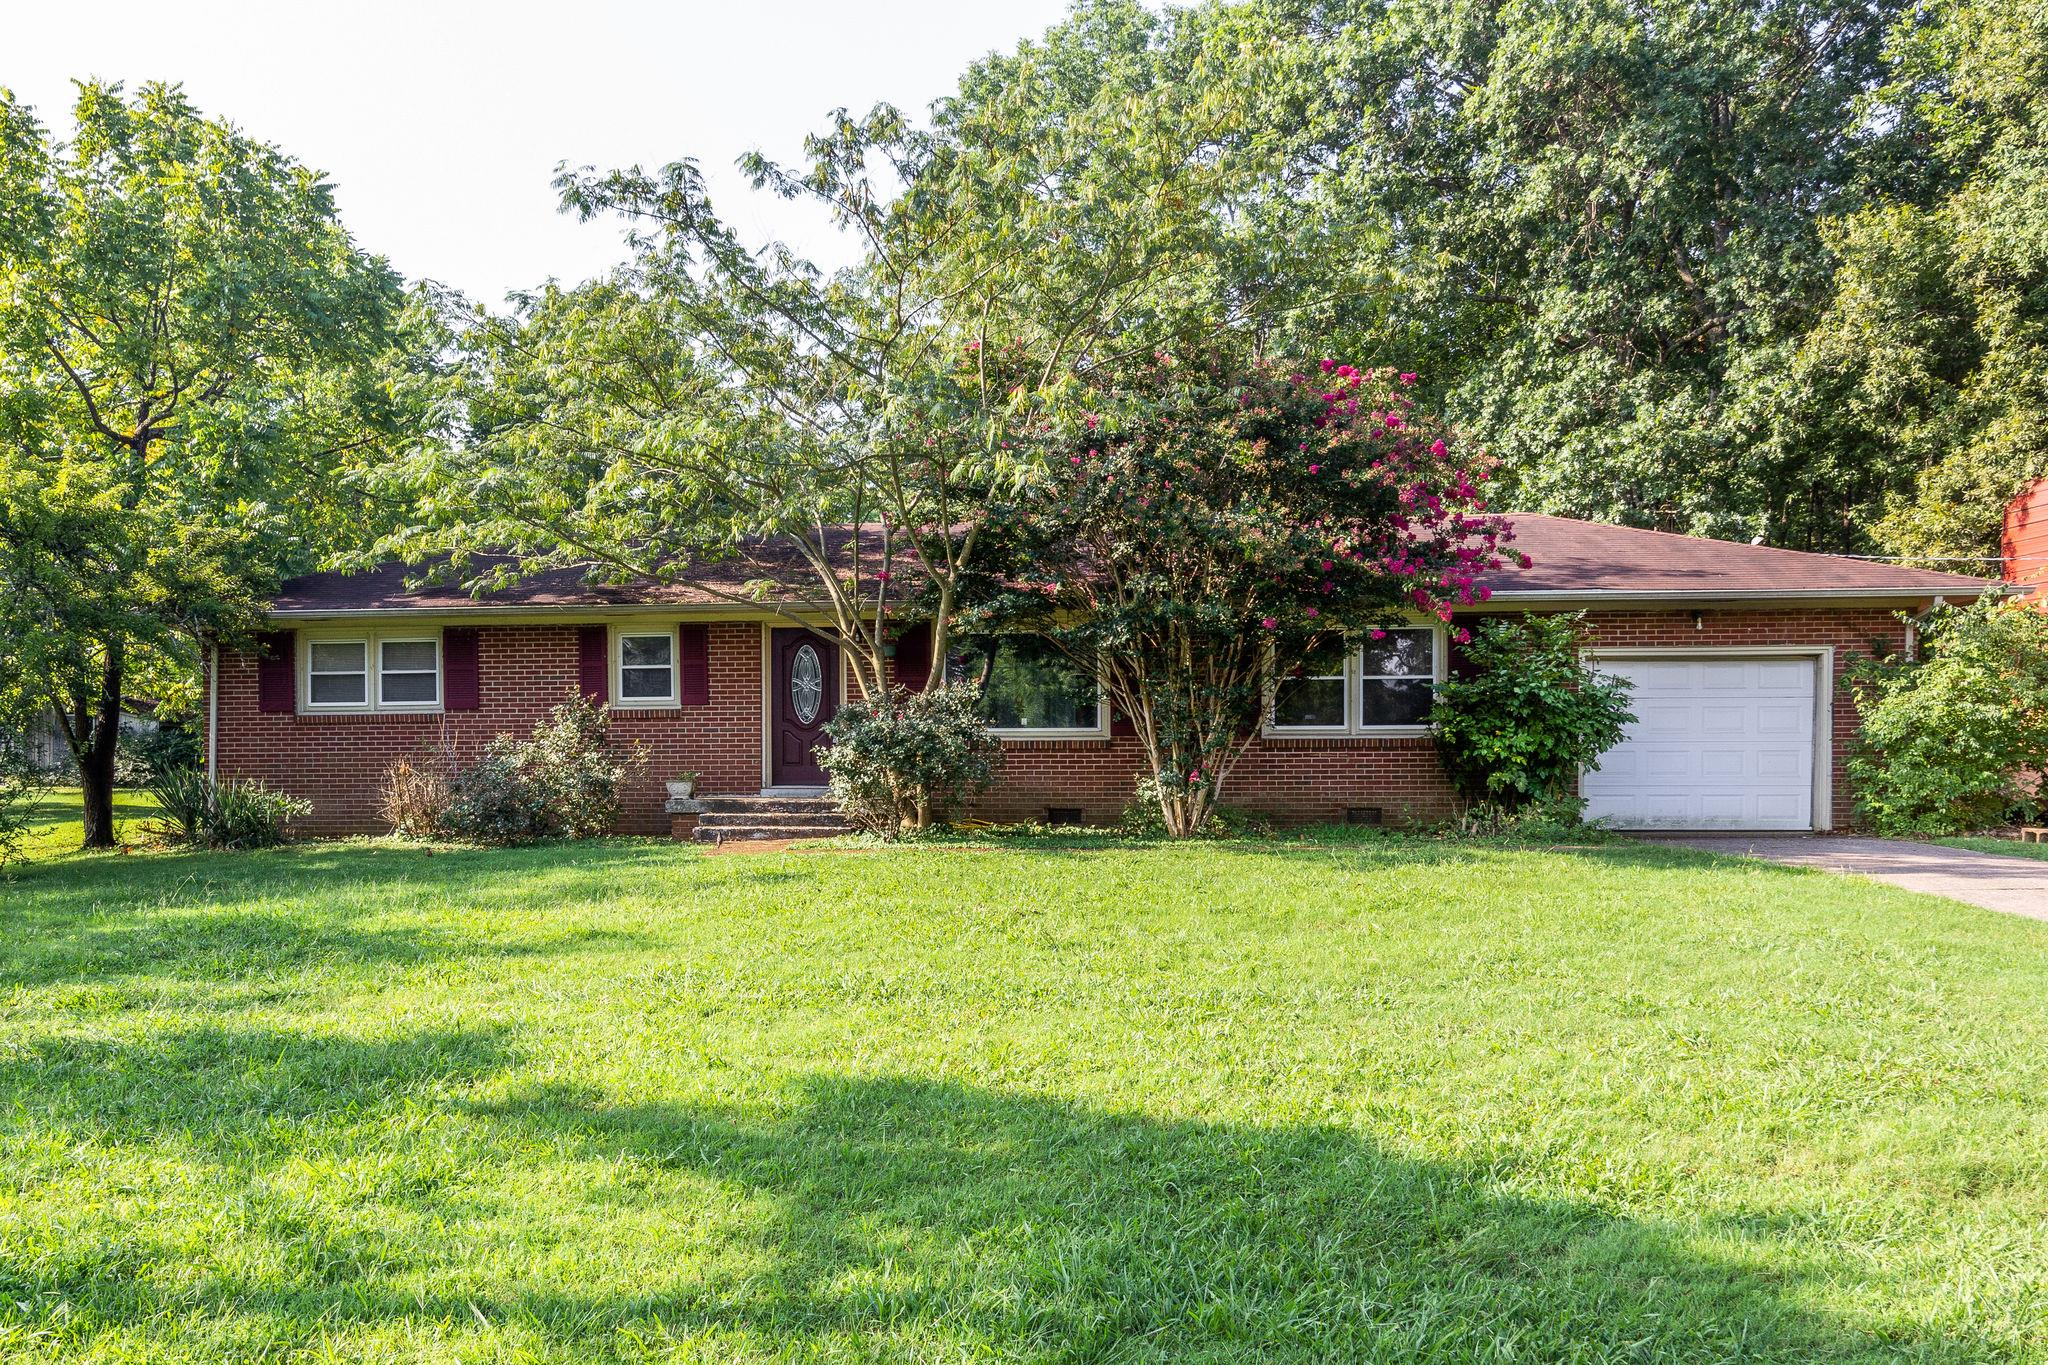 3155 Anderson Rd, Nashville-Antioch in Davidson County County, TN 37013 Home for Sale